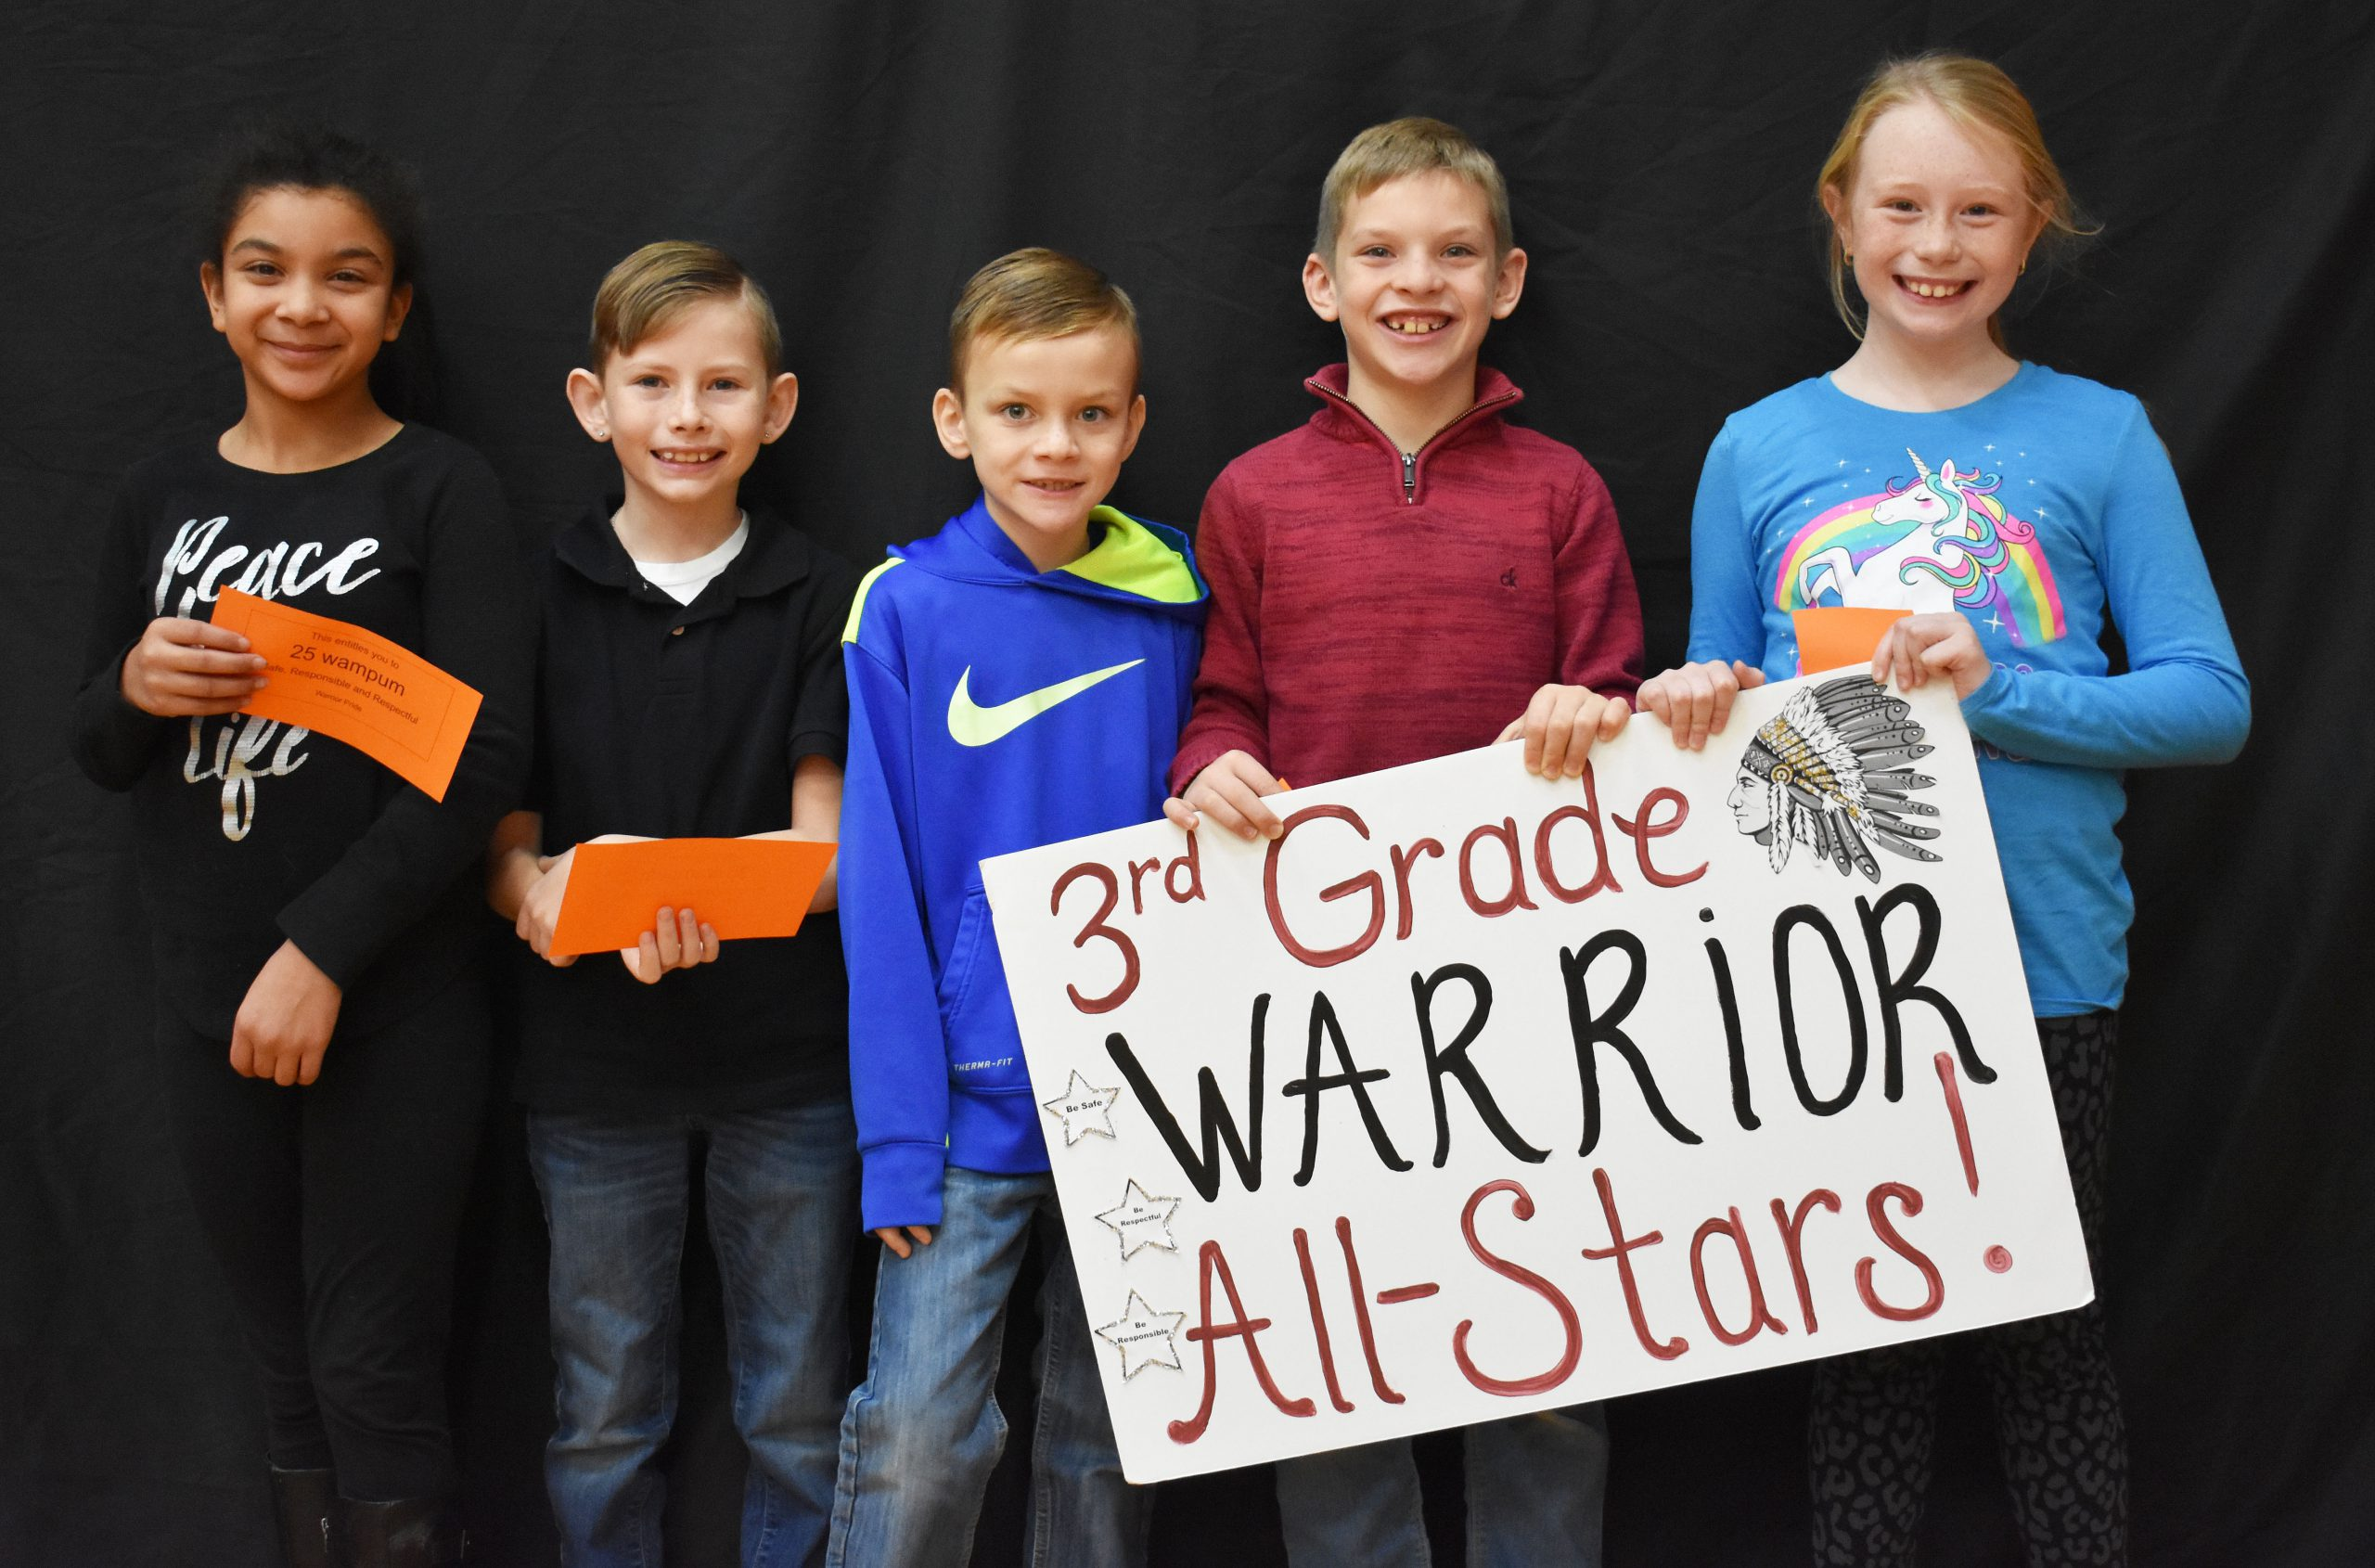 Students lined up with the third grade warrior sign